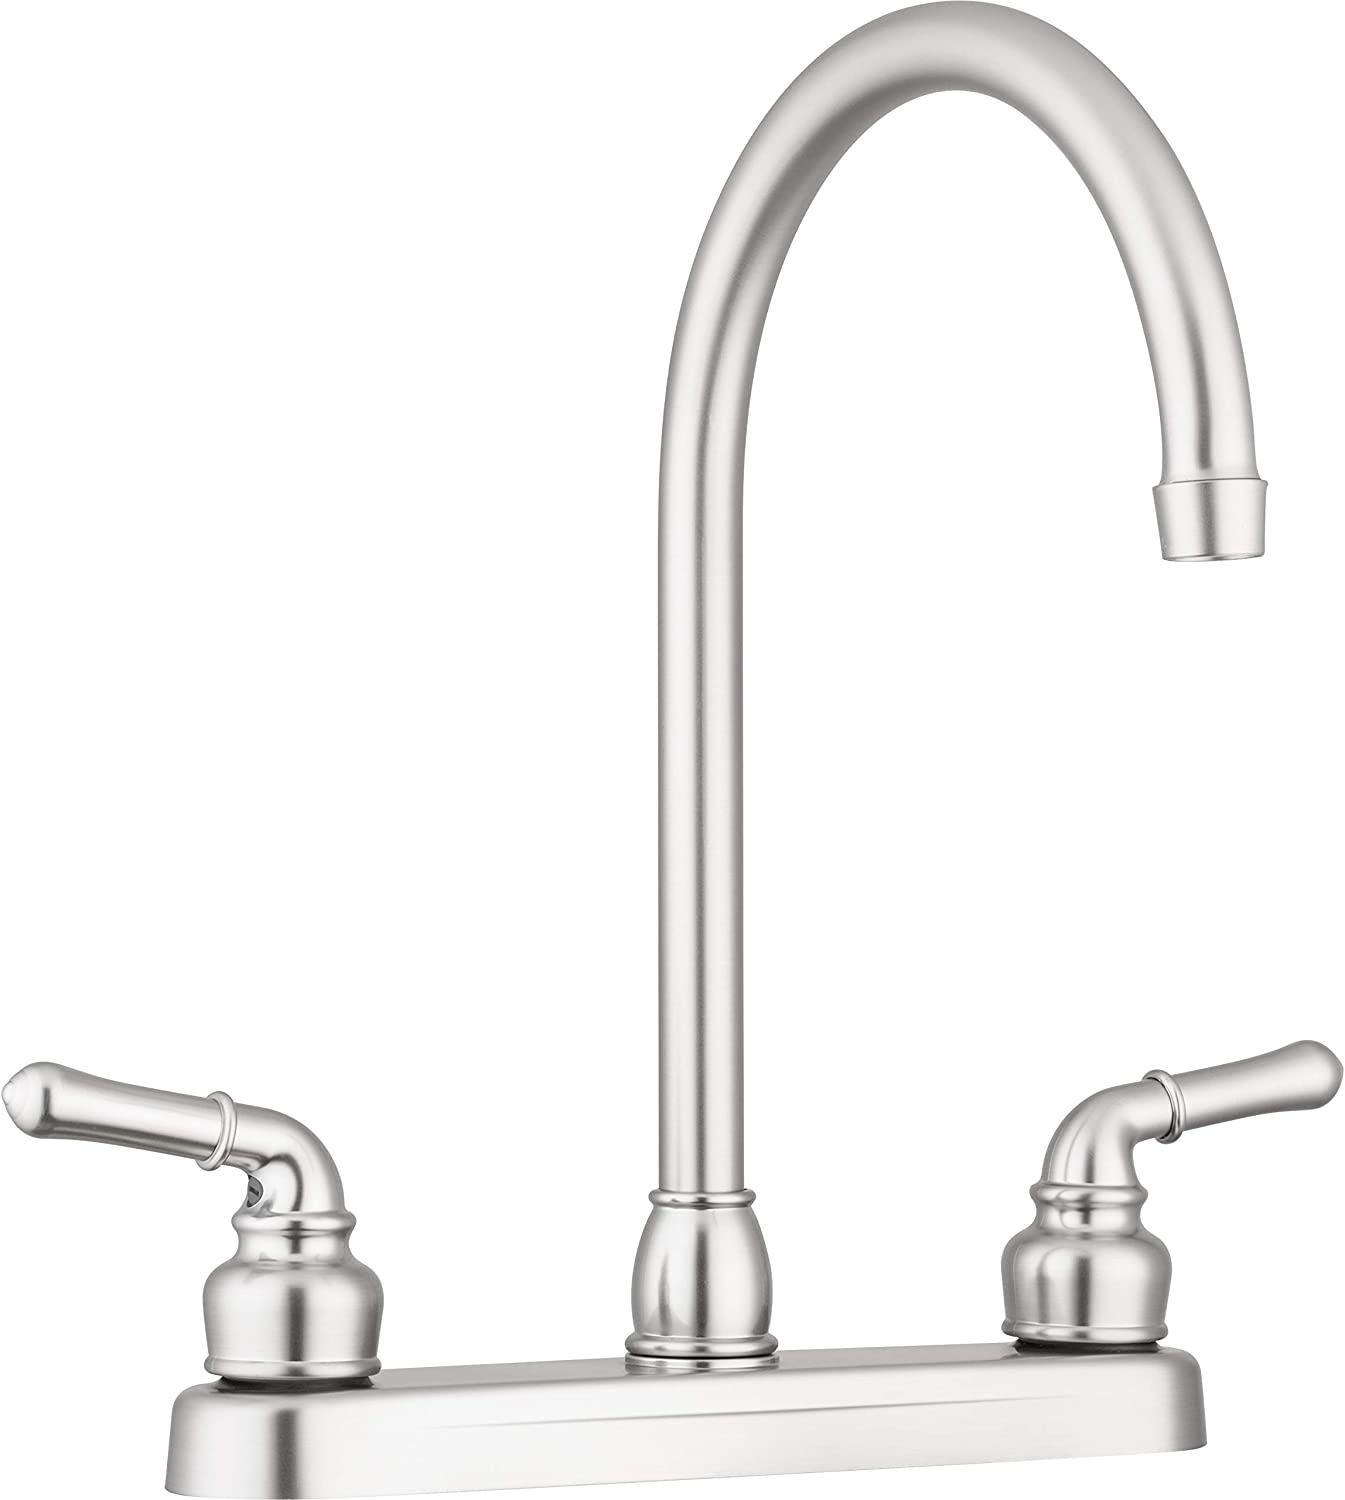 Pacific Bay Lynden Kitchen Sink Faucet Brushed Satin Nickel Plating Over Abs Plastic Amazon Com